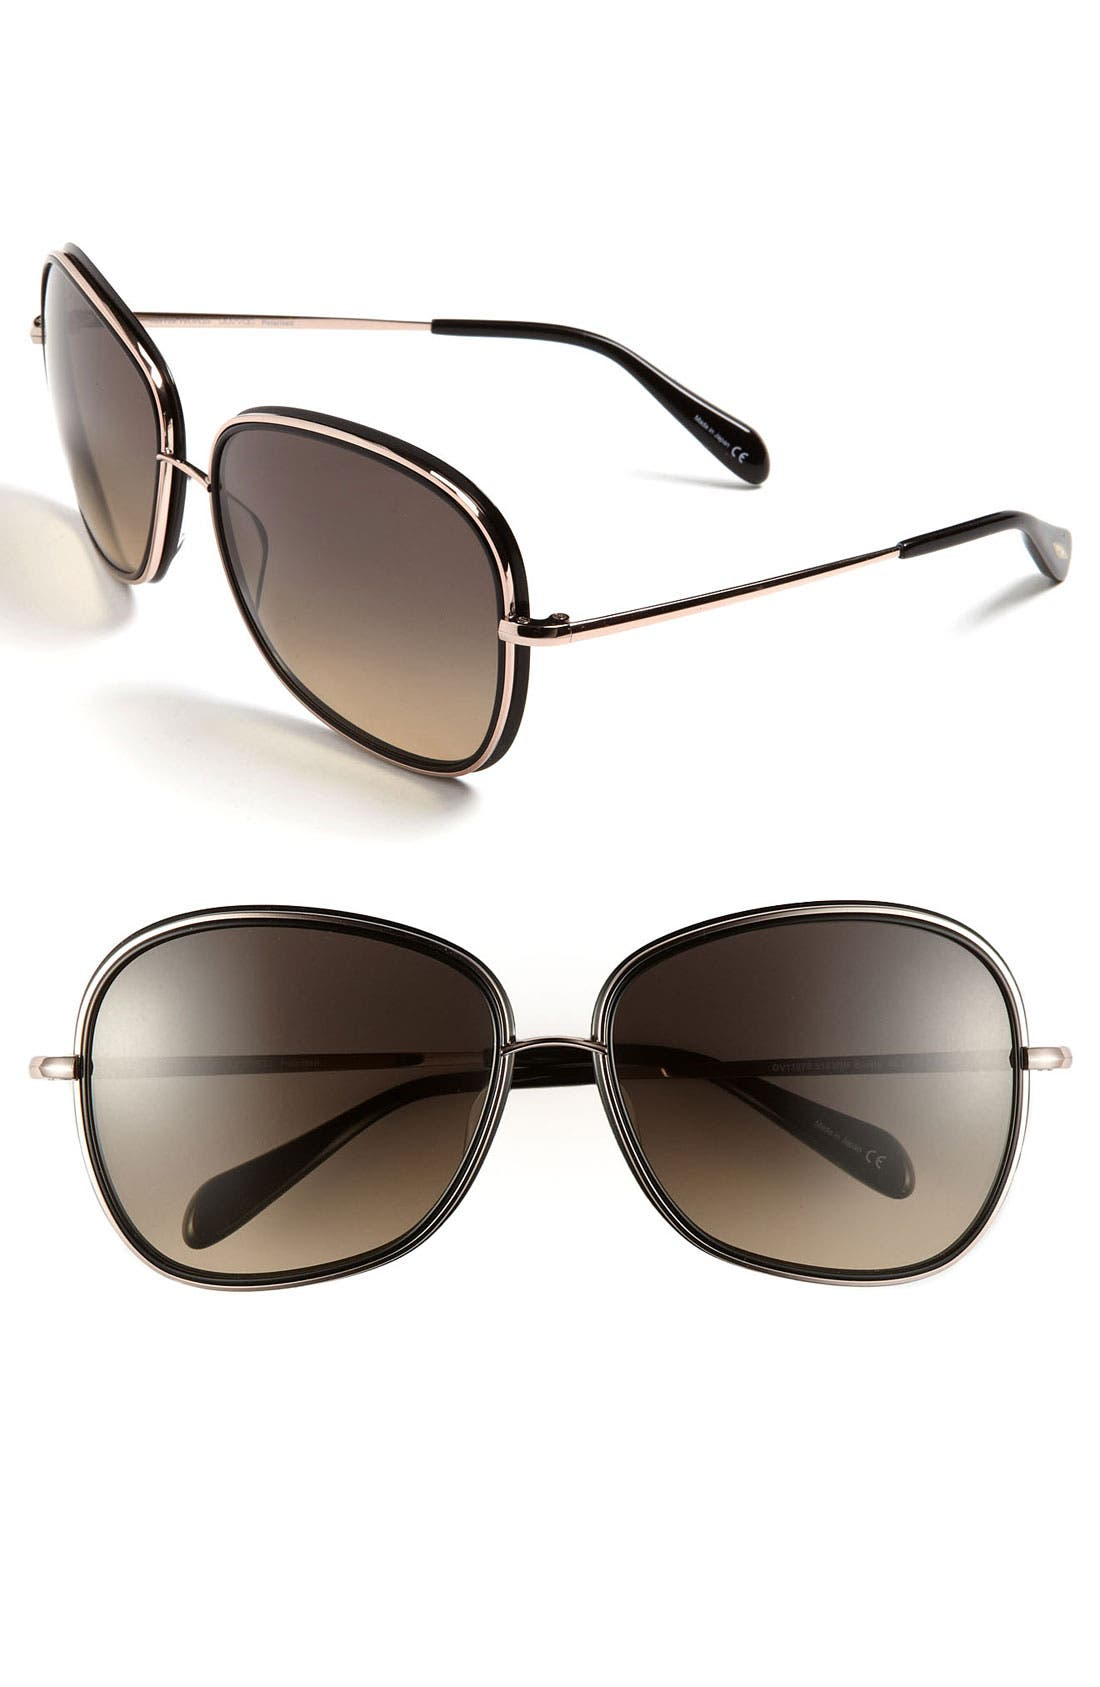 Alternate Image 1 Selected - Oliver Peoples 'Emely' 60mm Polarized Sunglasses